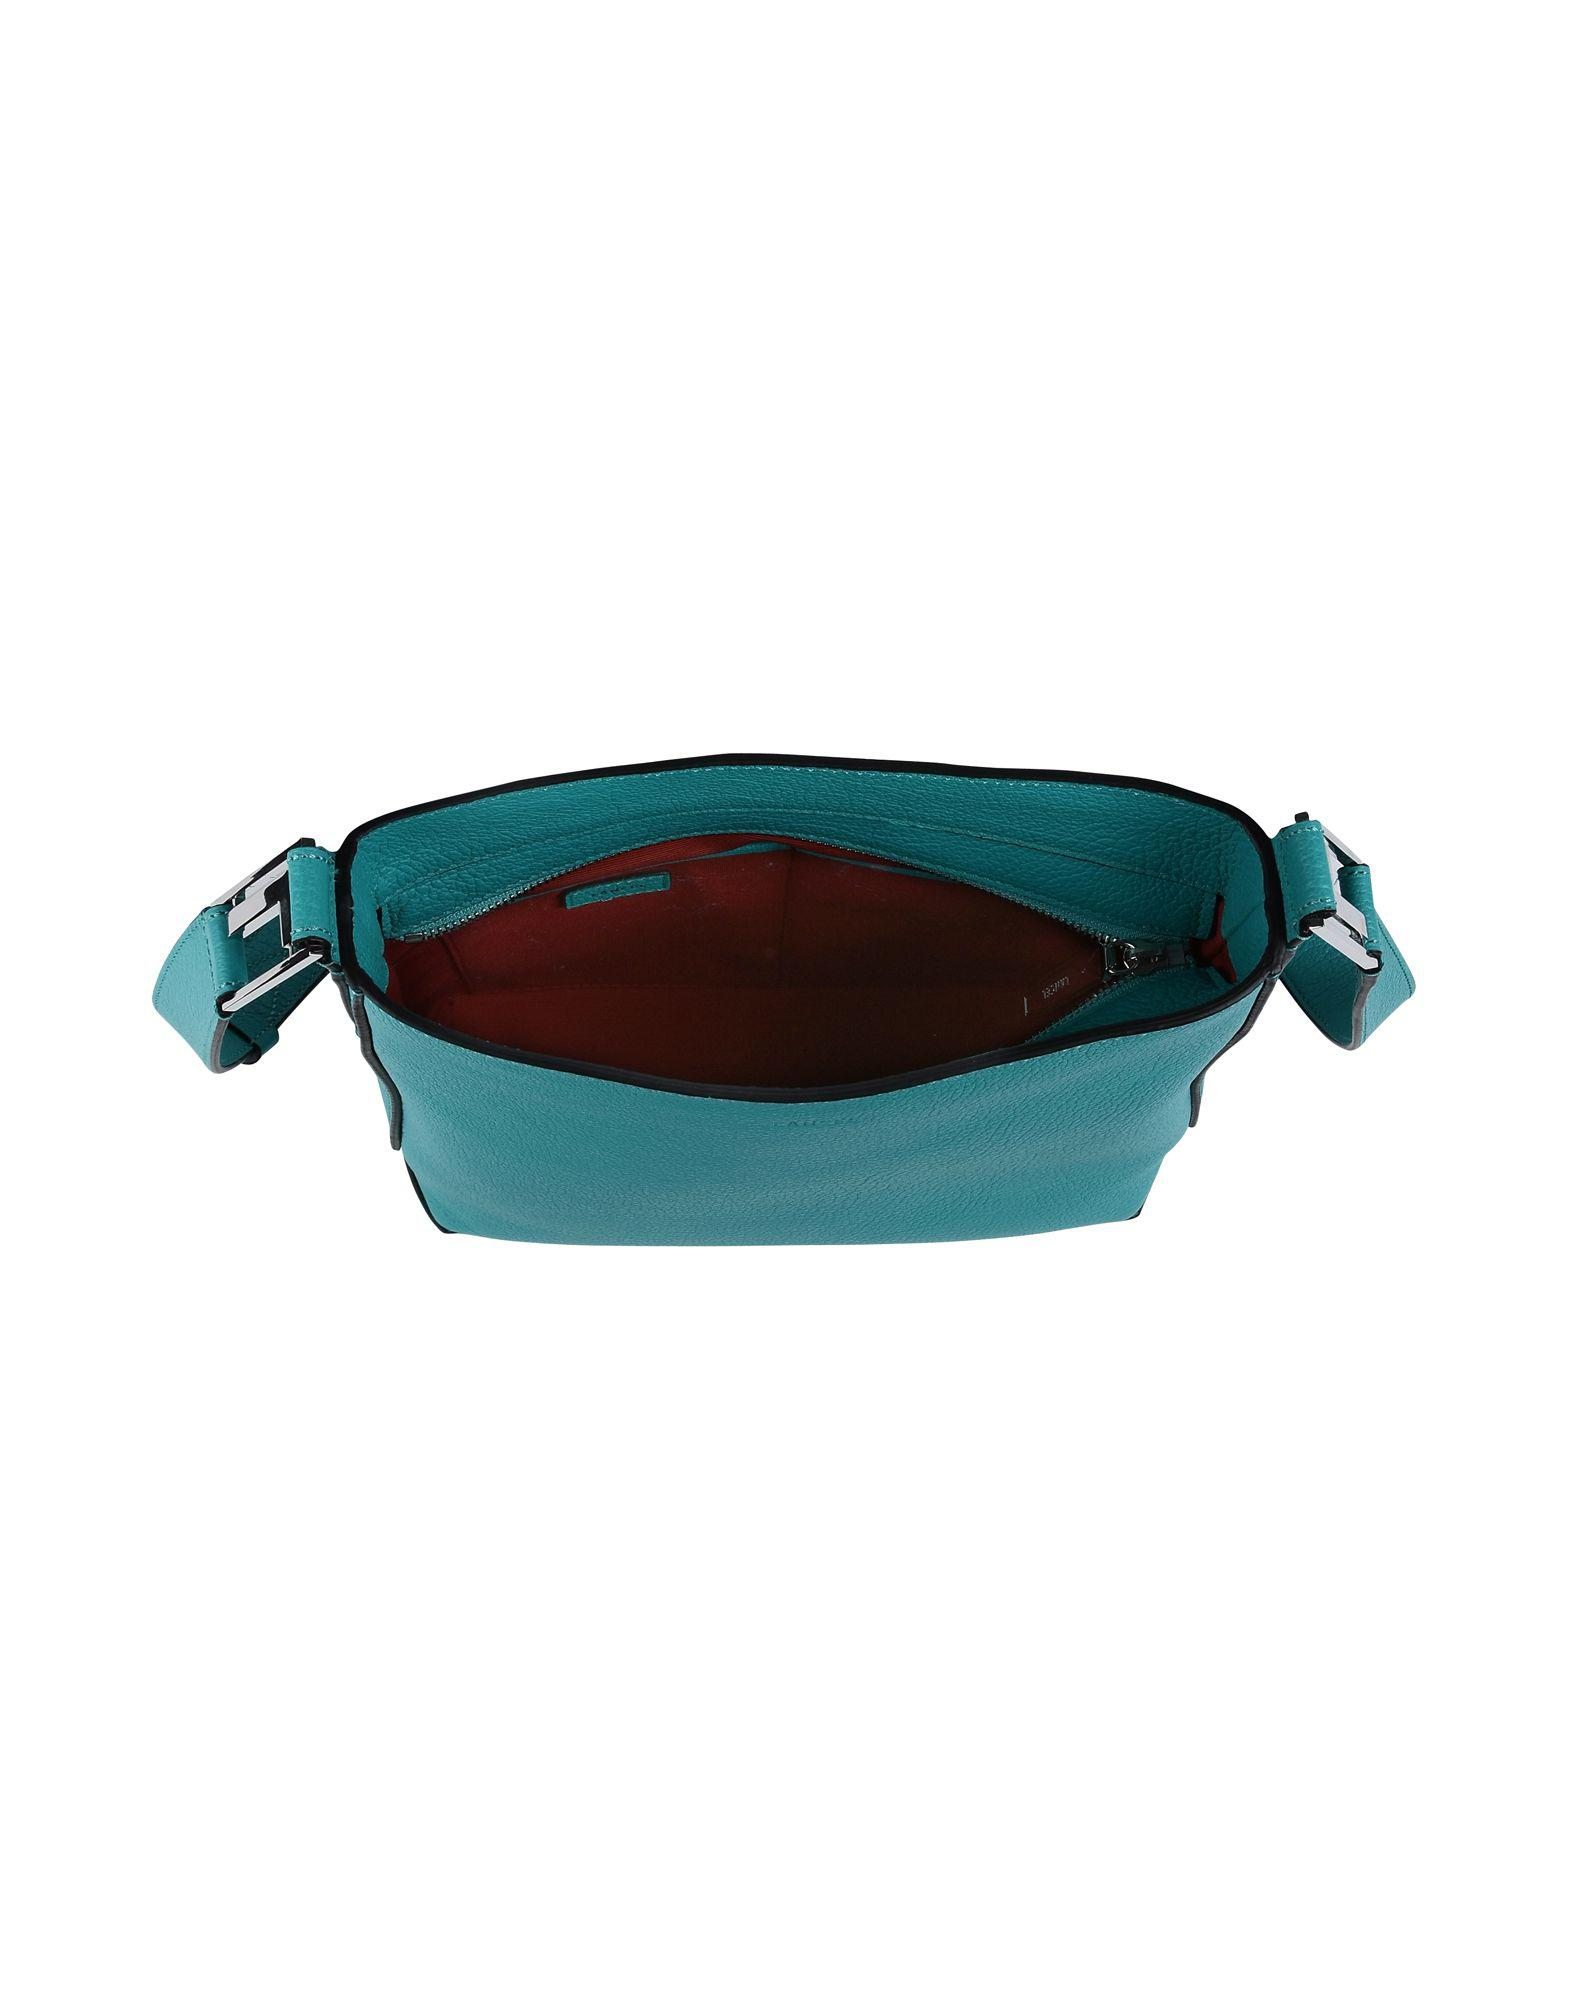 Lancel Leather Cross-body Bag in Turquoise (Blue)